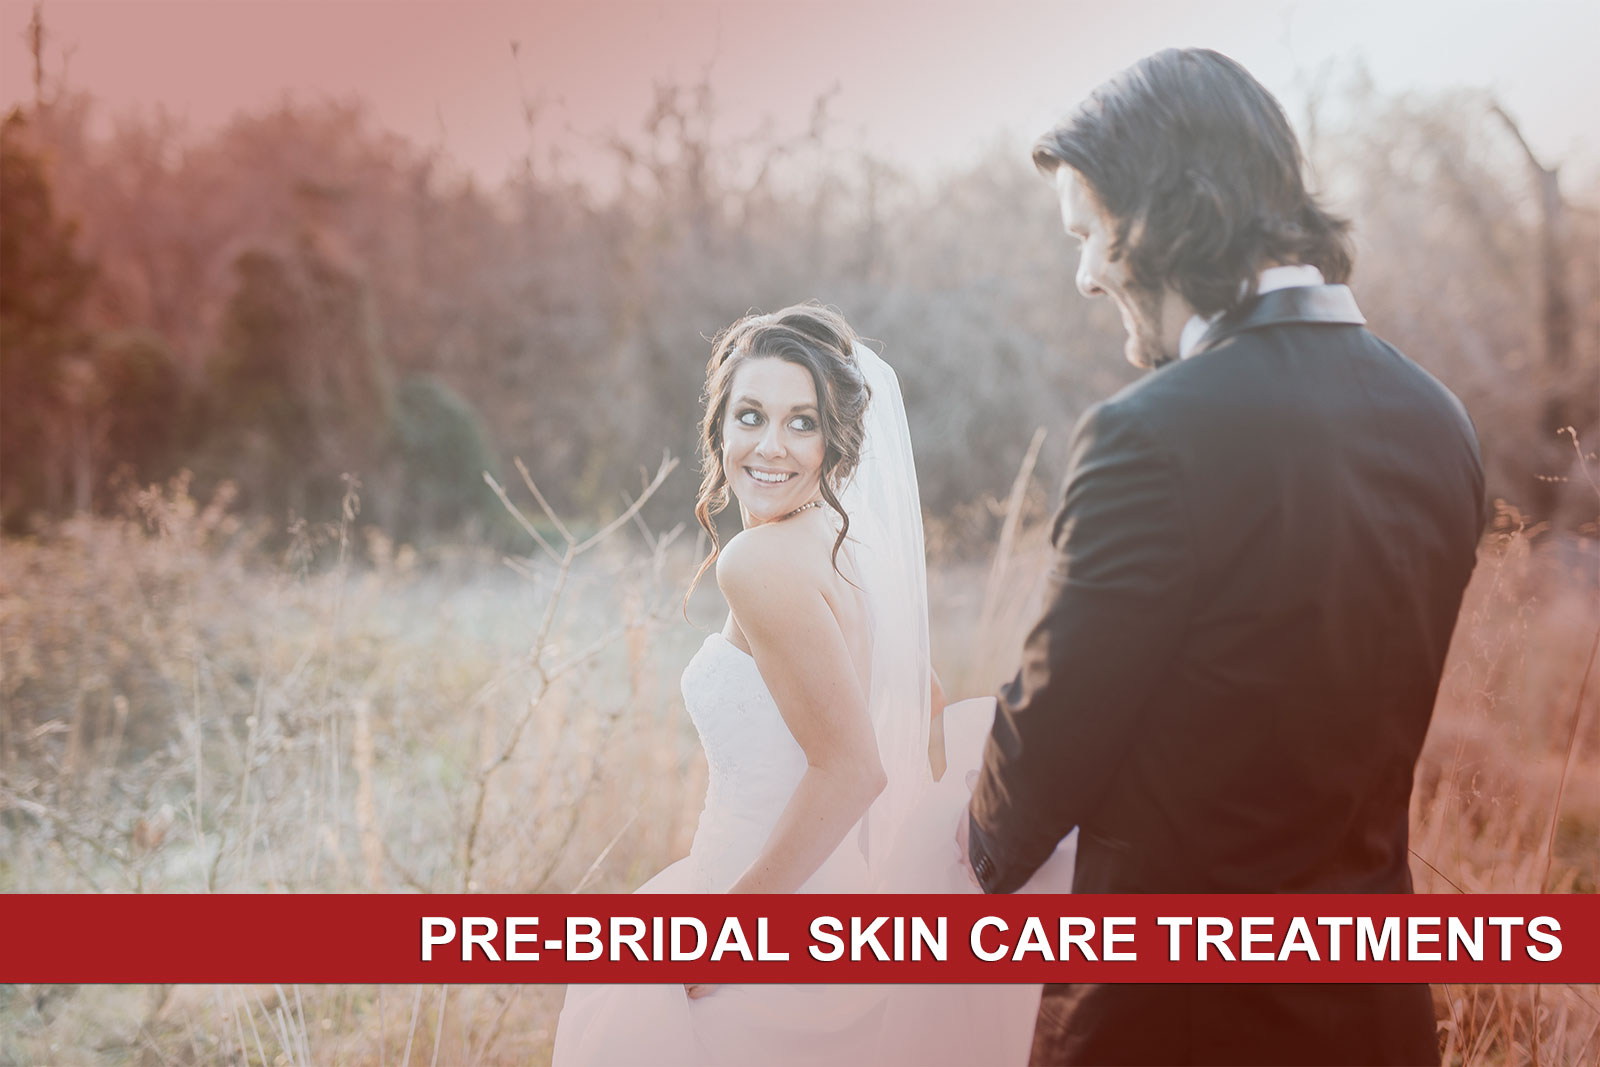 Pre-Bridal Treatments: Finding Your Fit